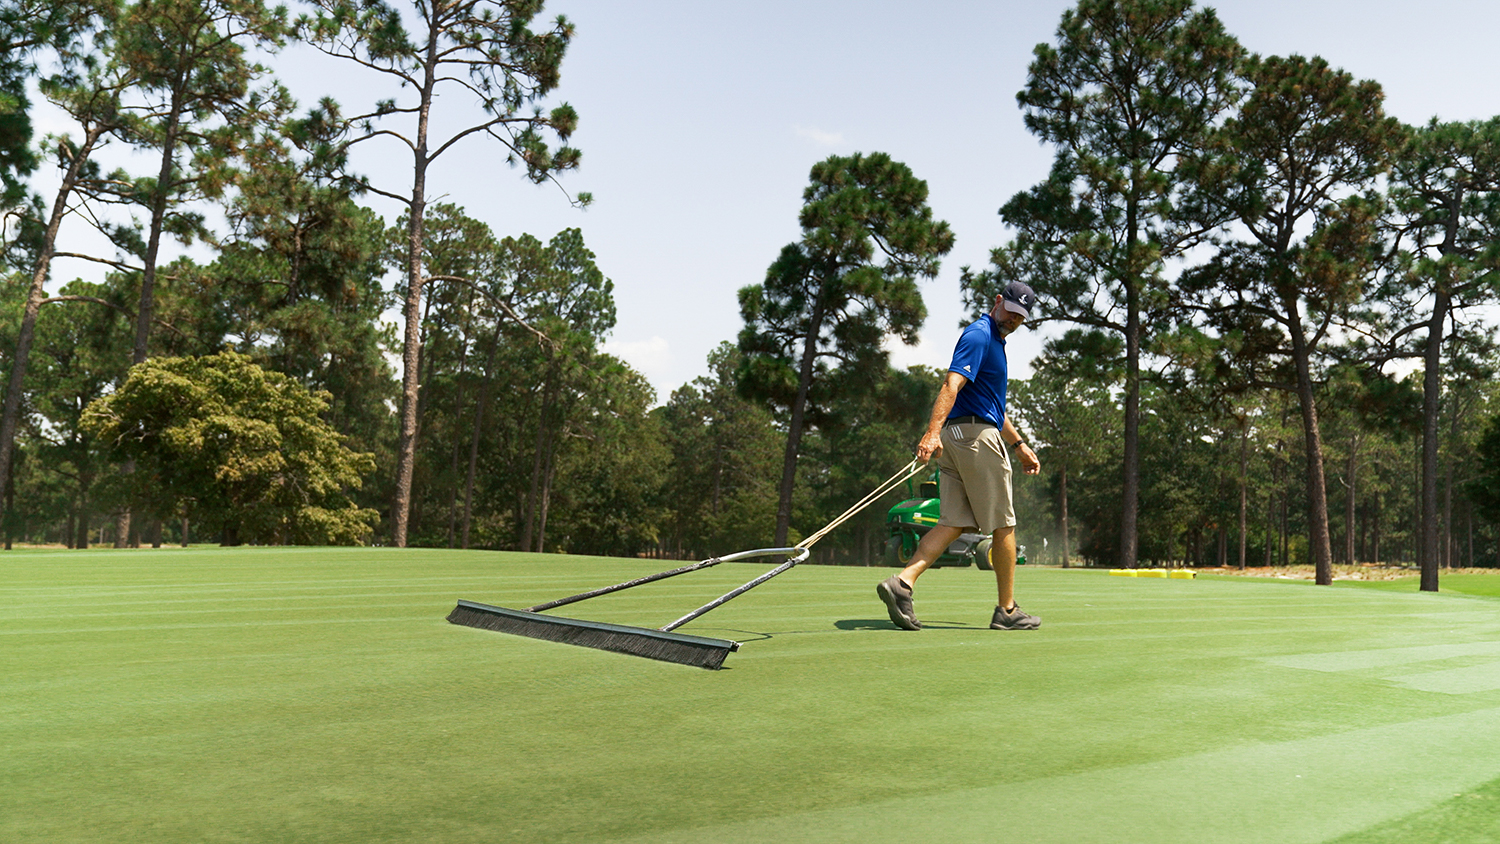 A golf course worker sweeps a putting green